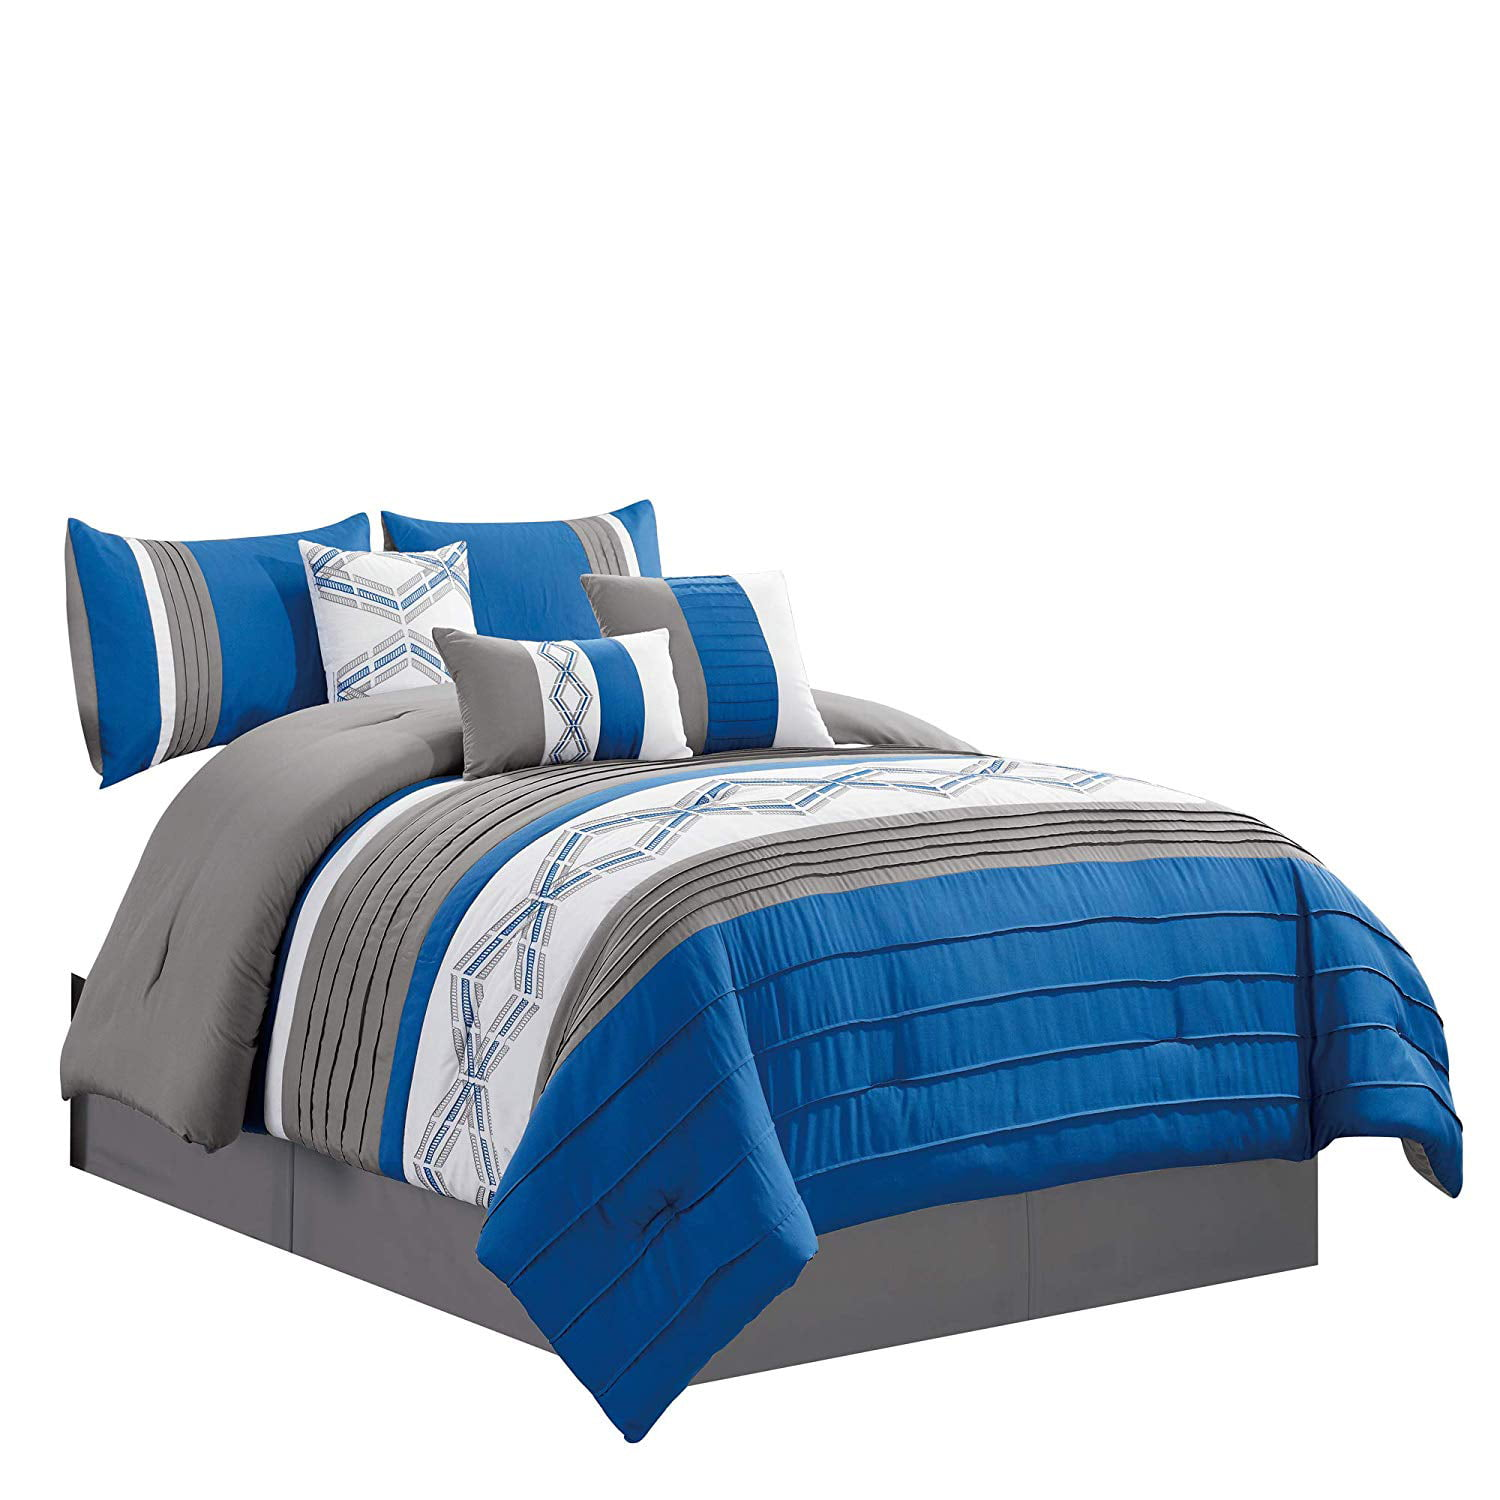 Embroidered 7 Piece Bedding Set Royal Blue Grey White